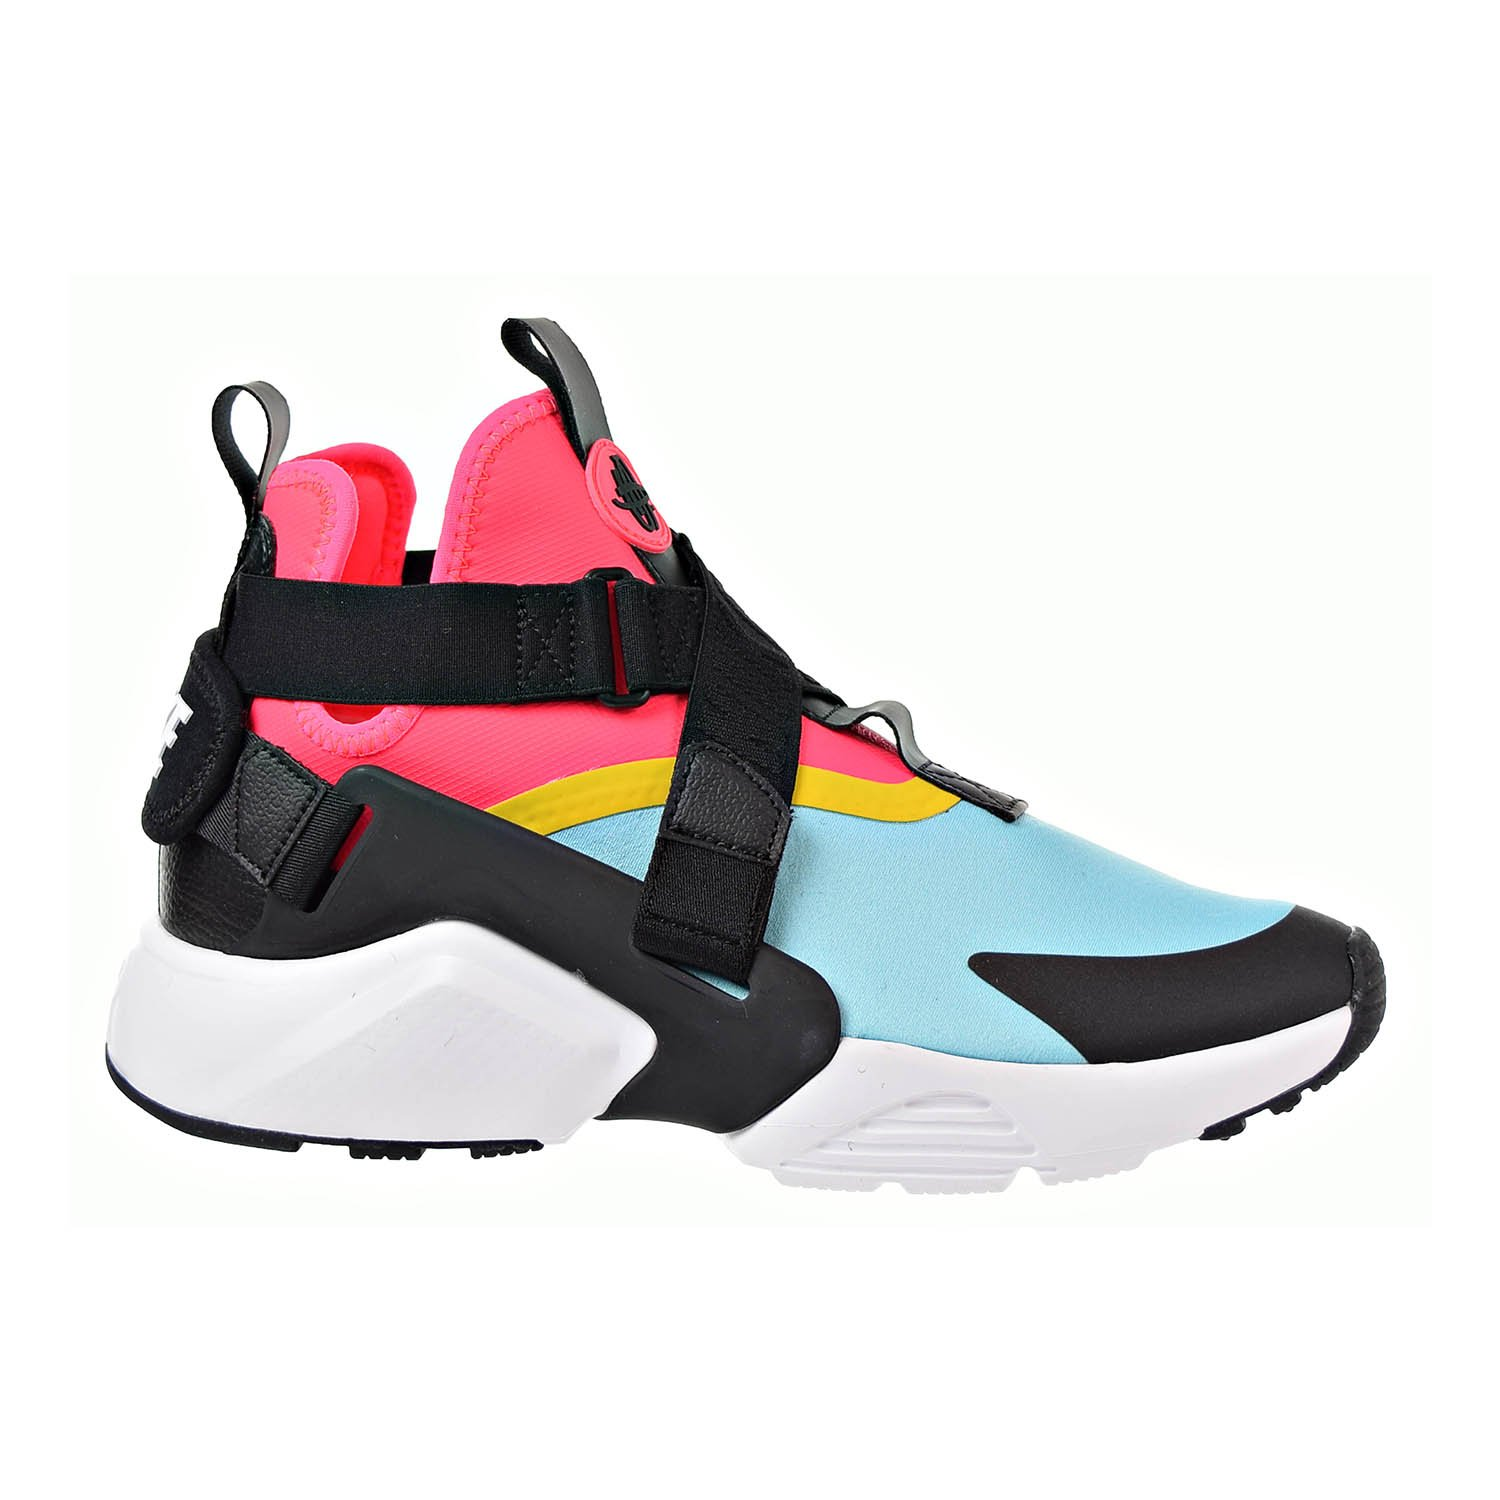 check out ab945 4c3de Galleon - NIKE Air Huarache City Women s Shoes Bleached Aqua Black Racer  Pink Ah6787-400 (11 B(M) US)